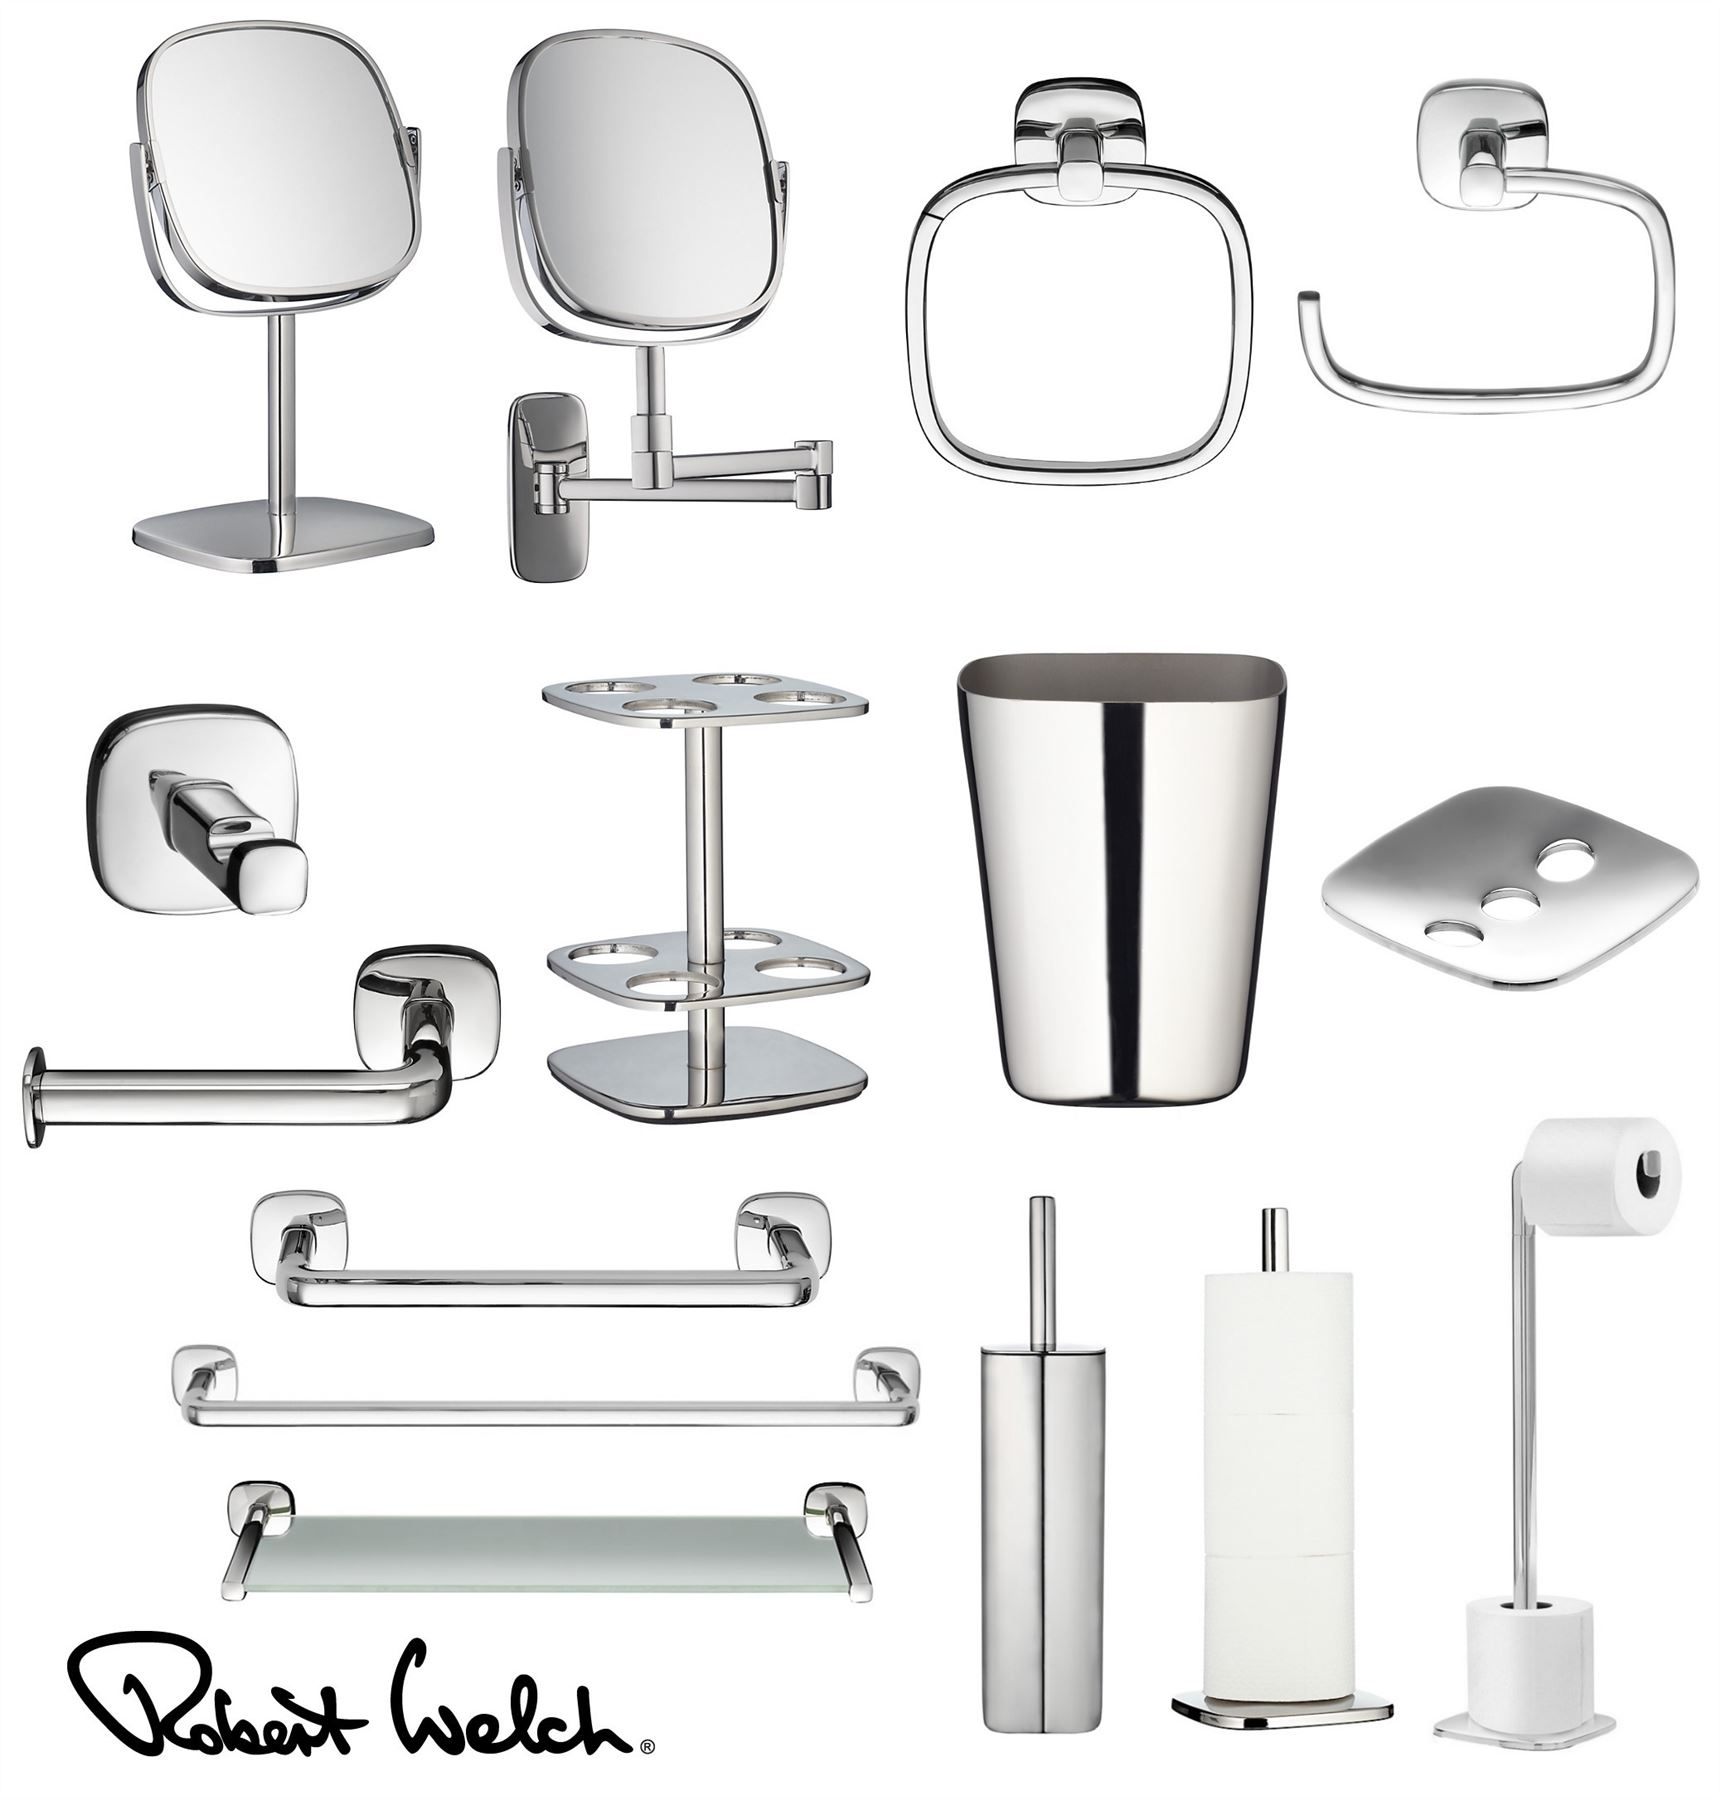 Robert Welch Burford Bathroom Range, Mirror, Towel Rail, Shelf or ...